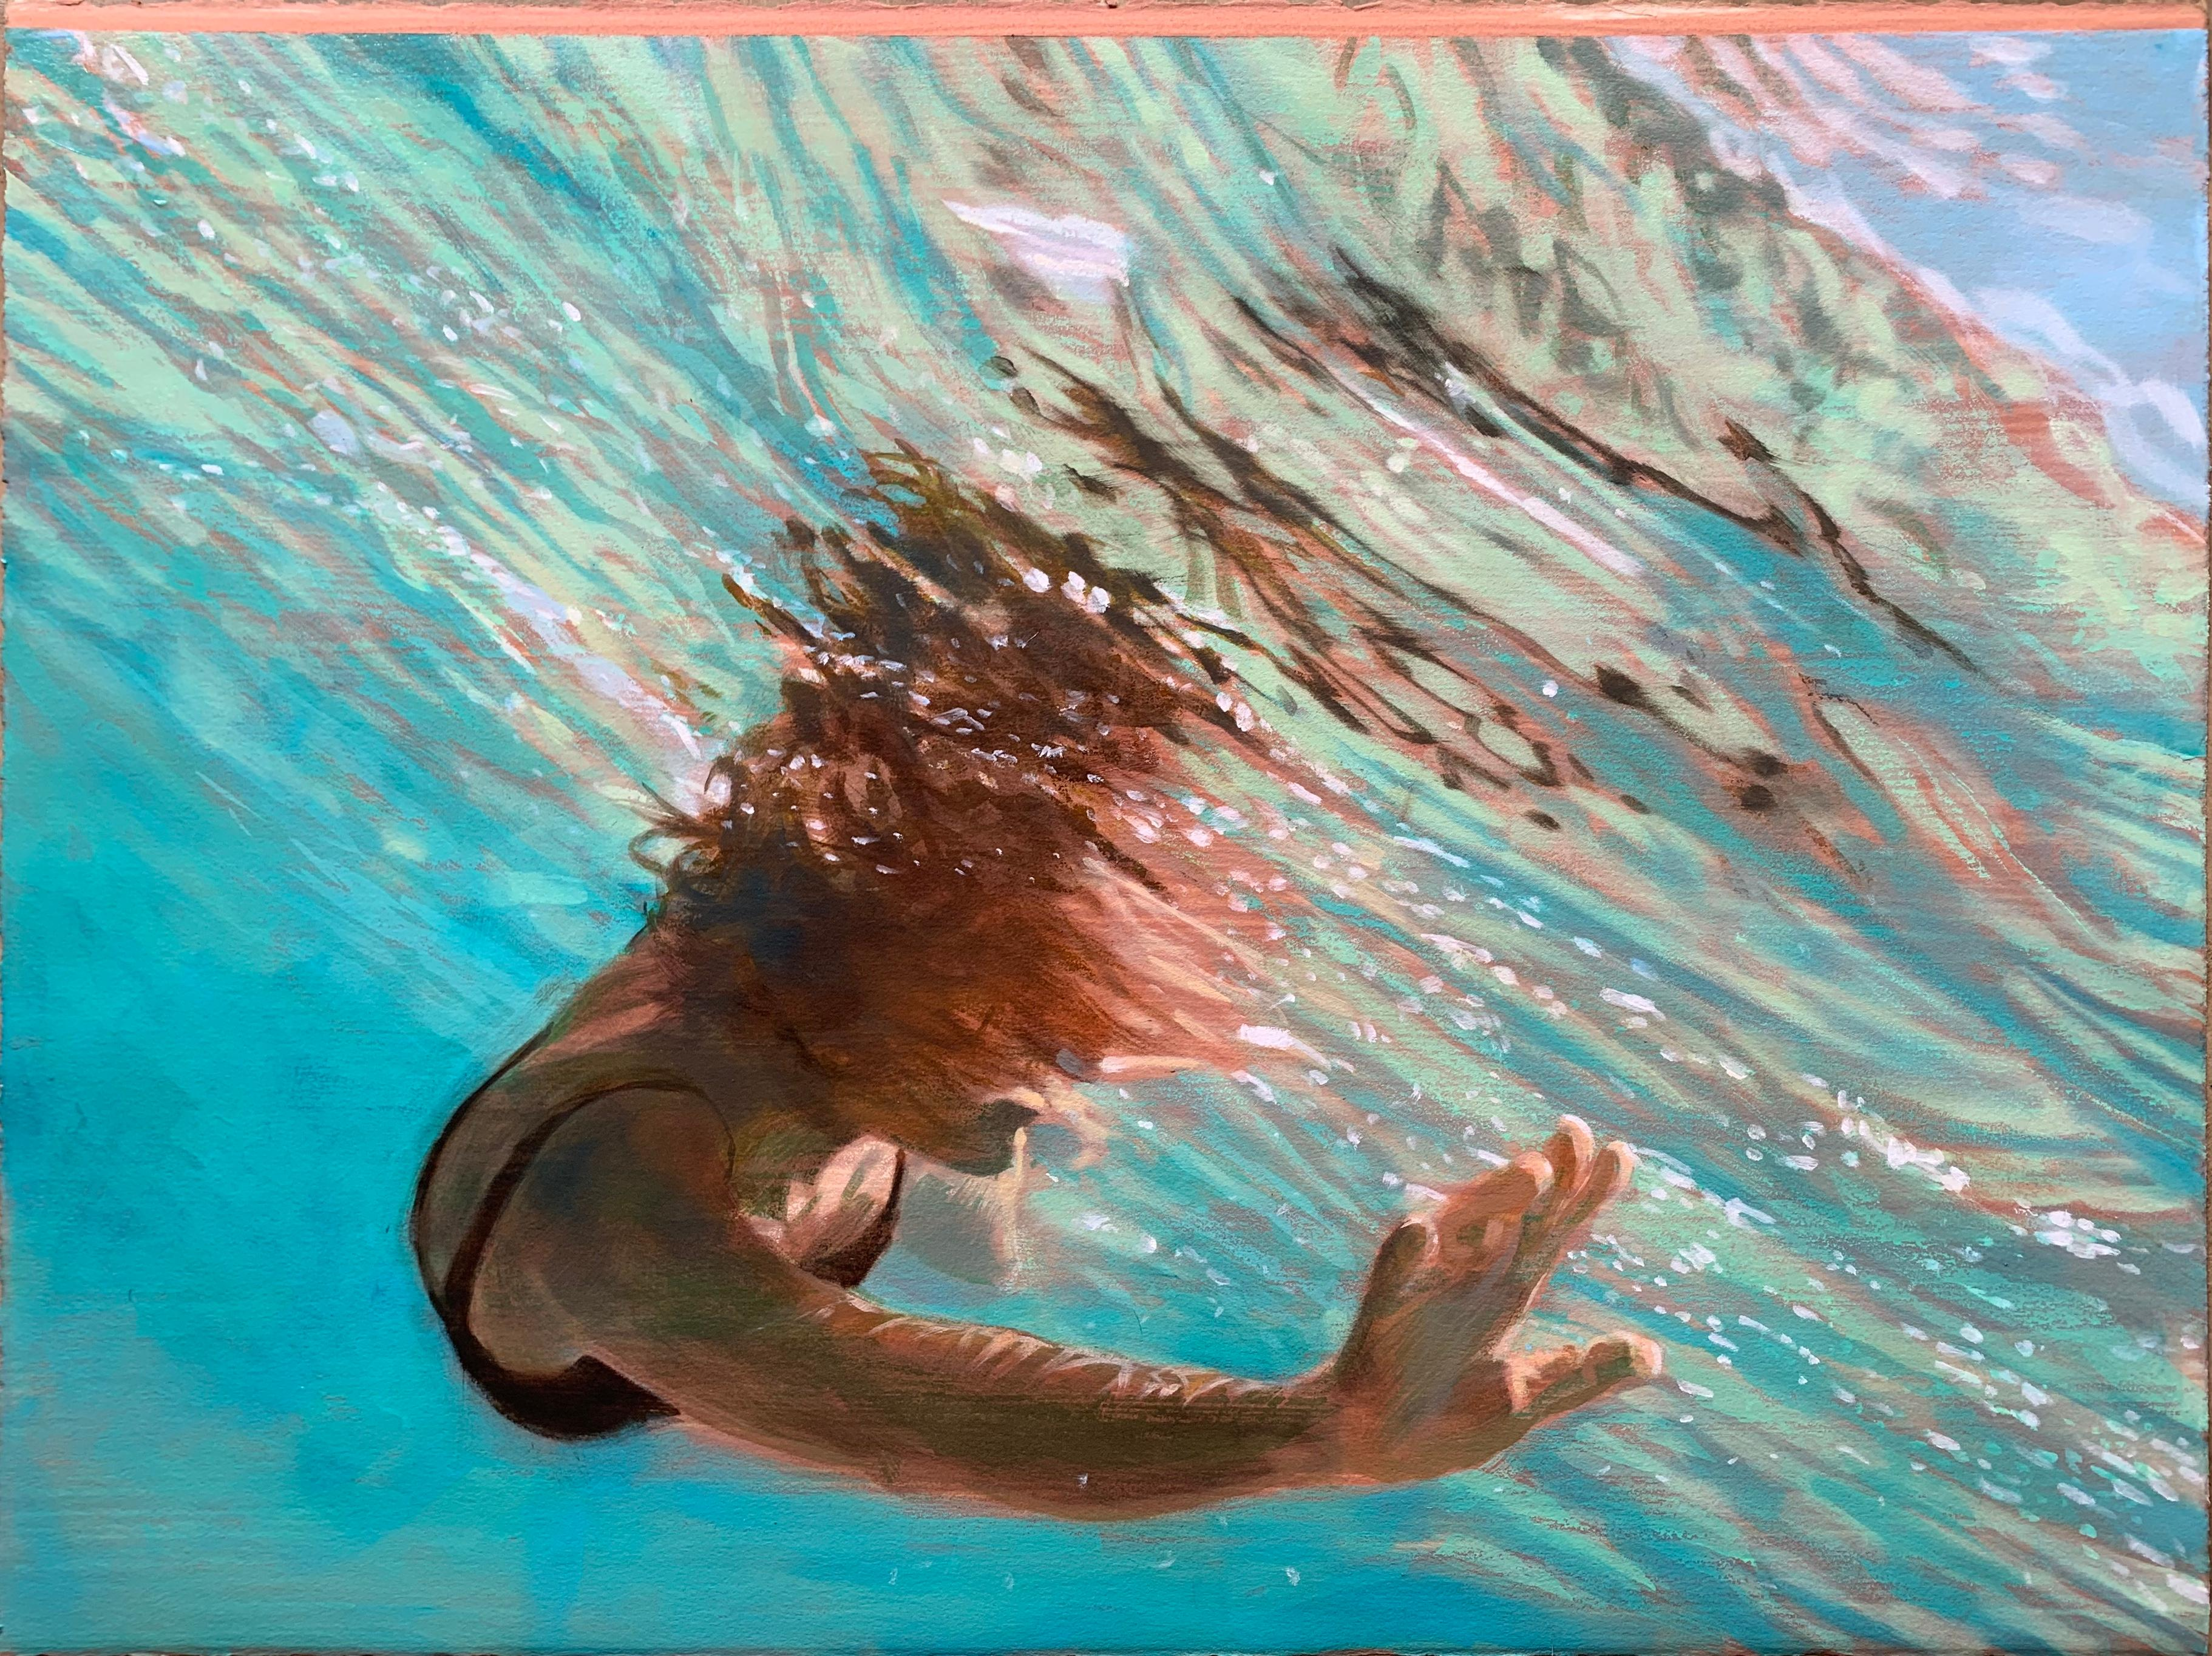 Current, Swimmer, Water, Work on Paper, Blue, Green, Female Figure